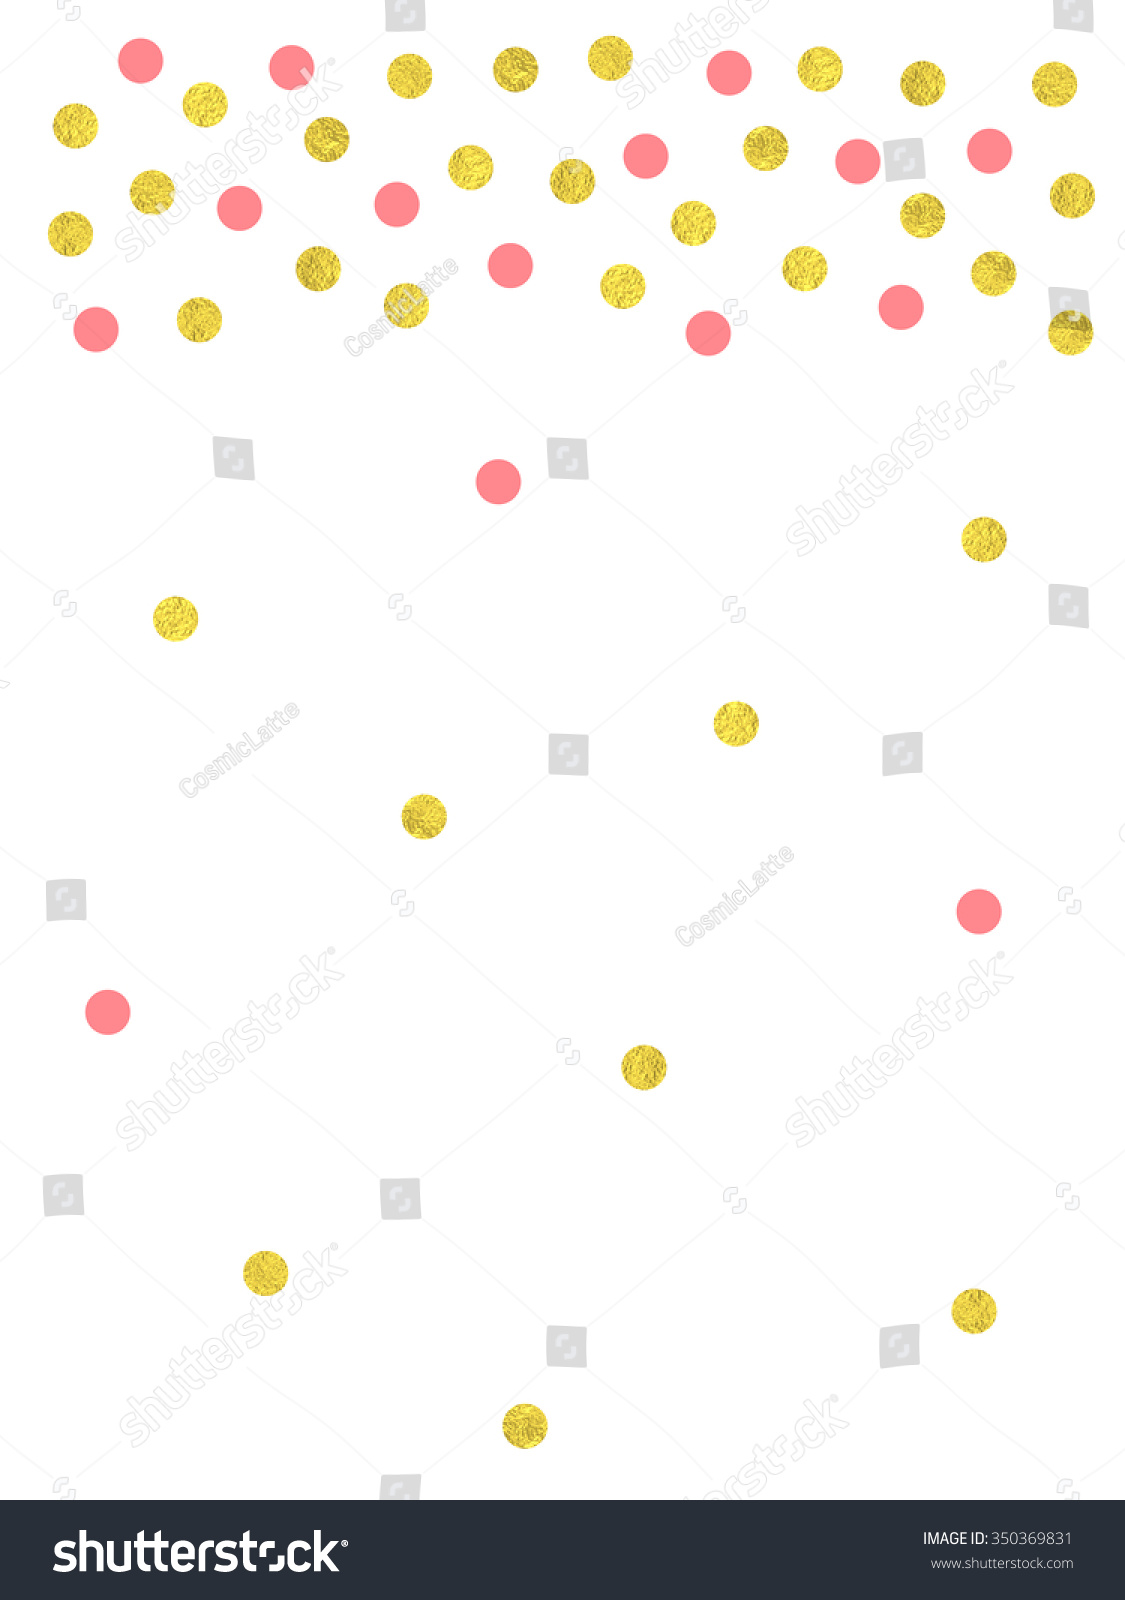 Gold And Pink Confetti Border Vector Illustration For Greeting Card Wedding Or Party Invitation